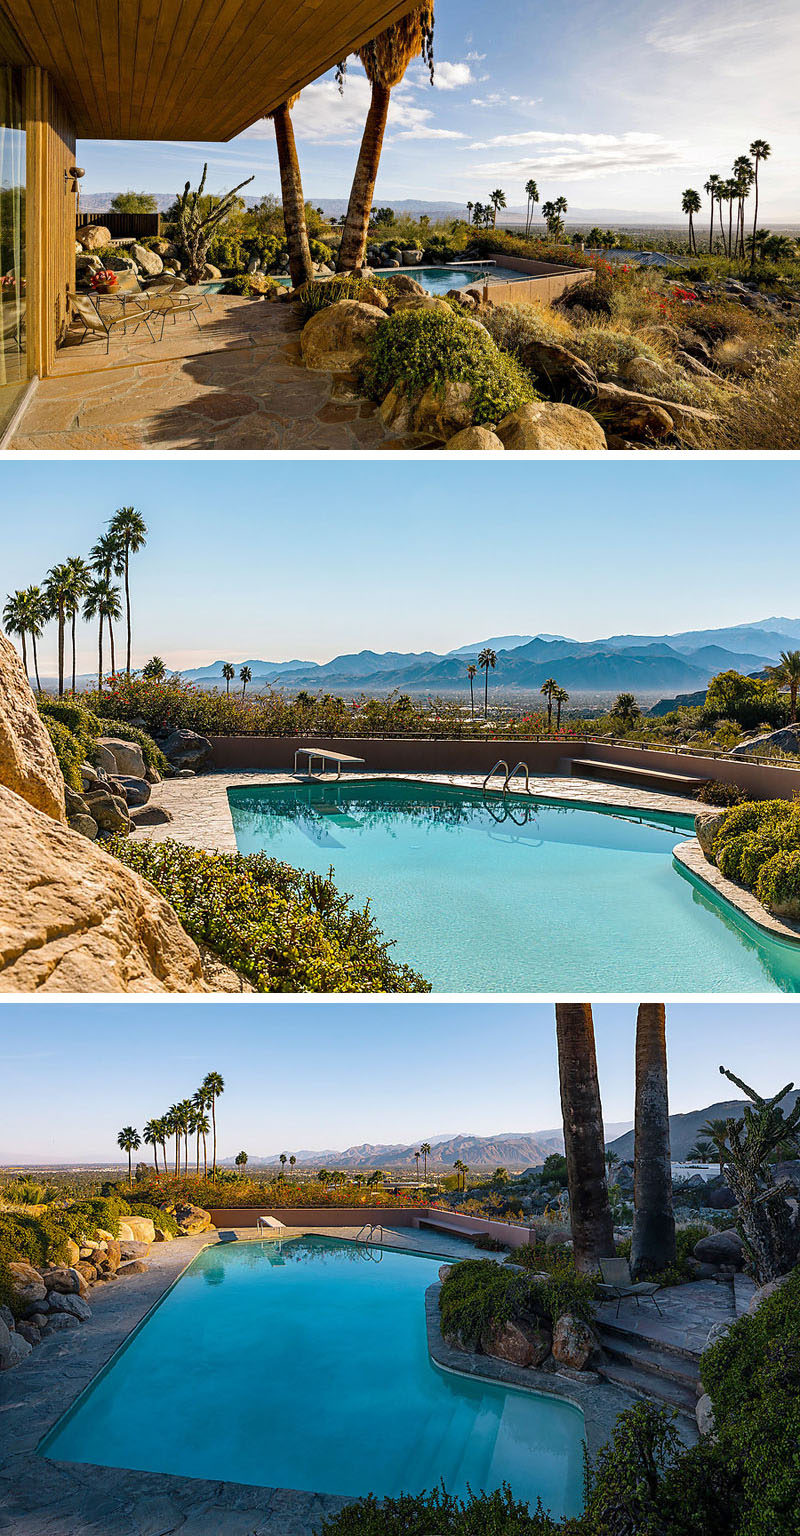 This mid-century modern house has a patio that leads down to the swimming pool and garden. Vast views of the desert and mountains can be seen all around. #Patio #SwimmingPool #MidCenturyModern